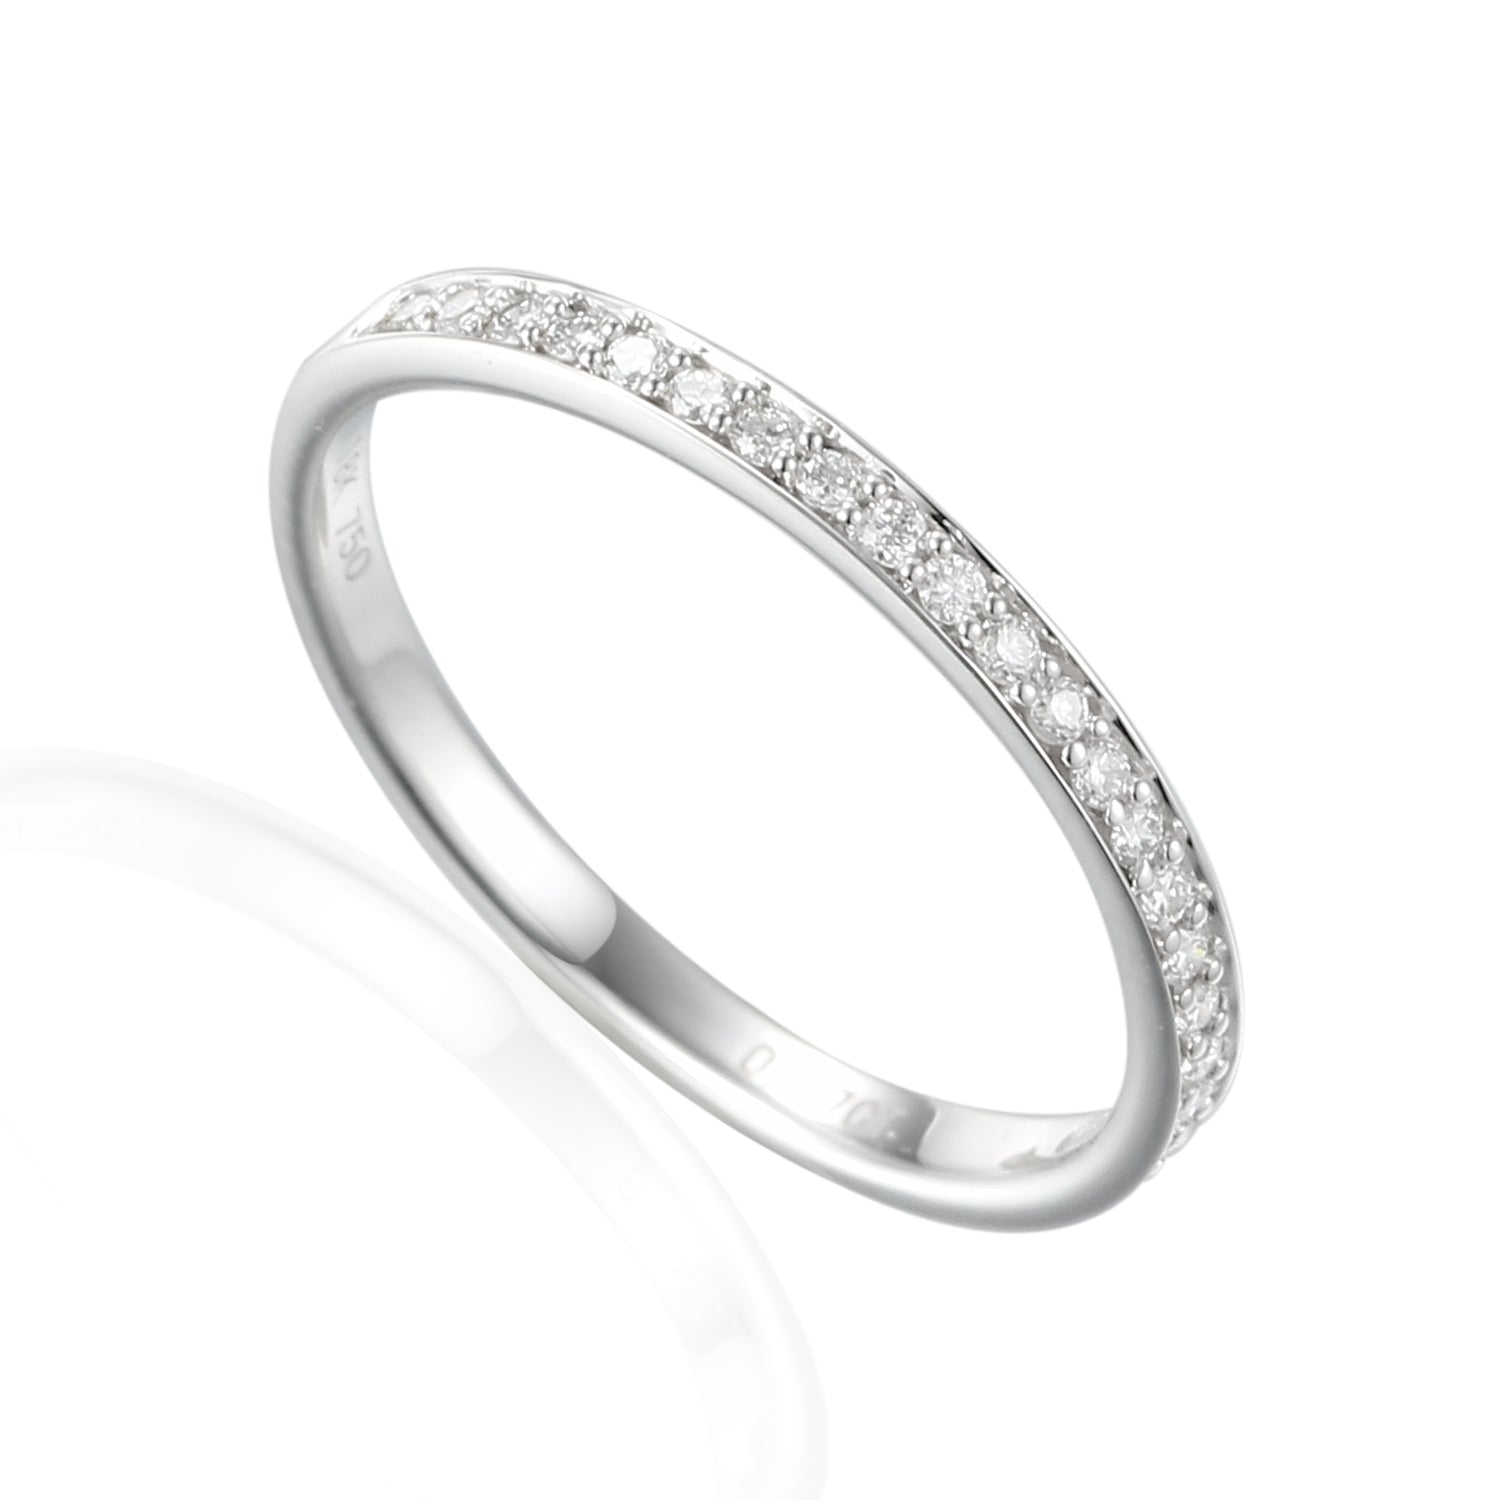 product eternity bands boodles diamond scale subsampling band raindance shop full jewellery crop false upscale ring hoop the zoom